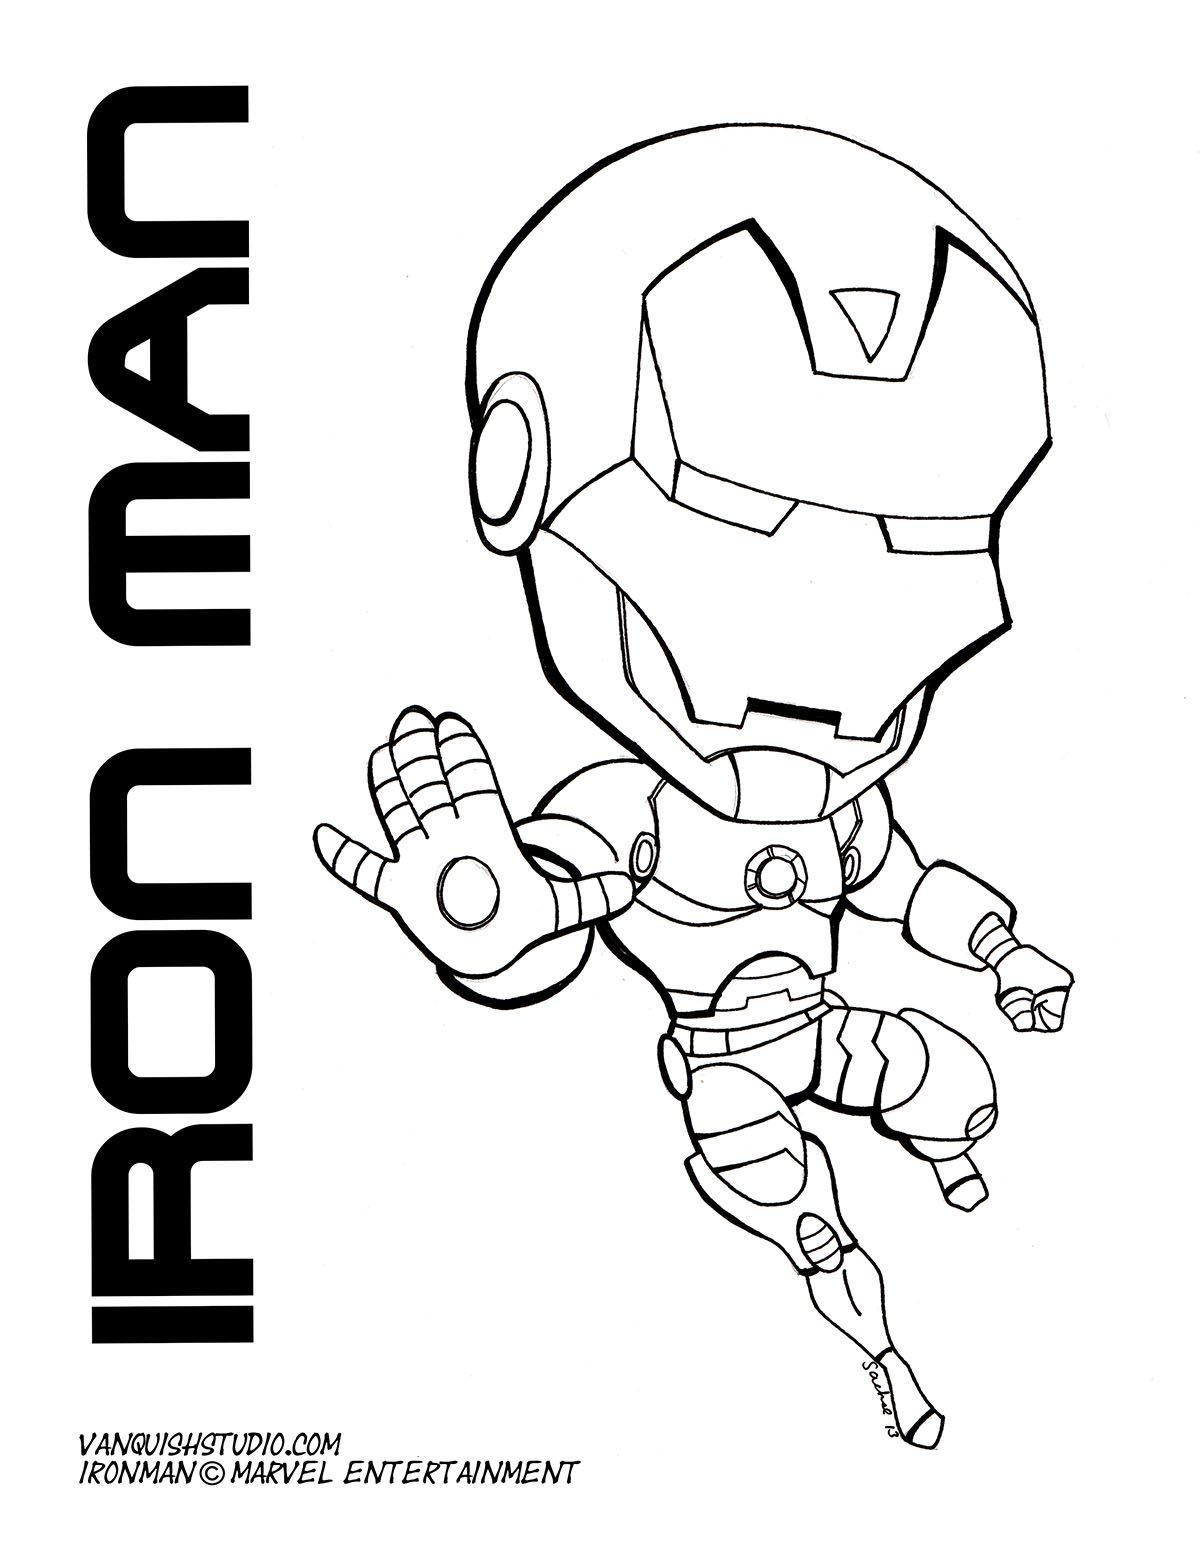 Ironman Coloring Page Available Superhero Coloring Pages Minion Coloring Pages Superhero Coloring